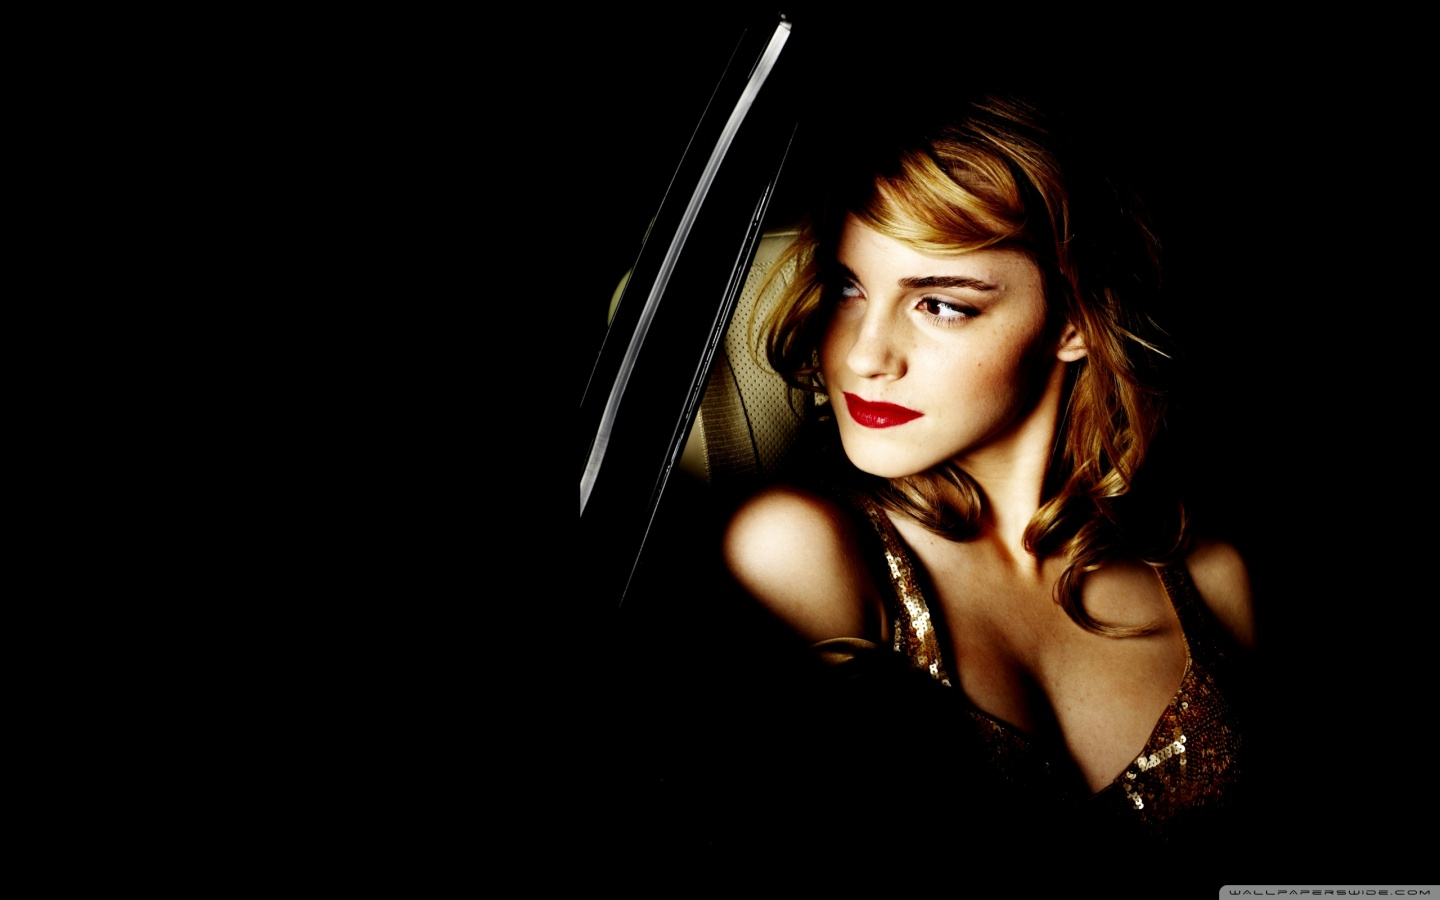 beautiful emma latest wallpapers - Emma Watson Wallpapers HD Nice Wallpapers